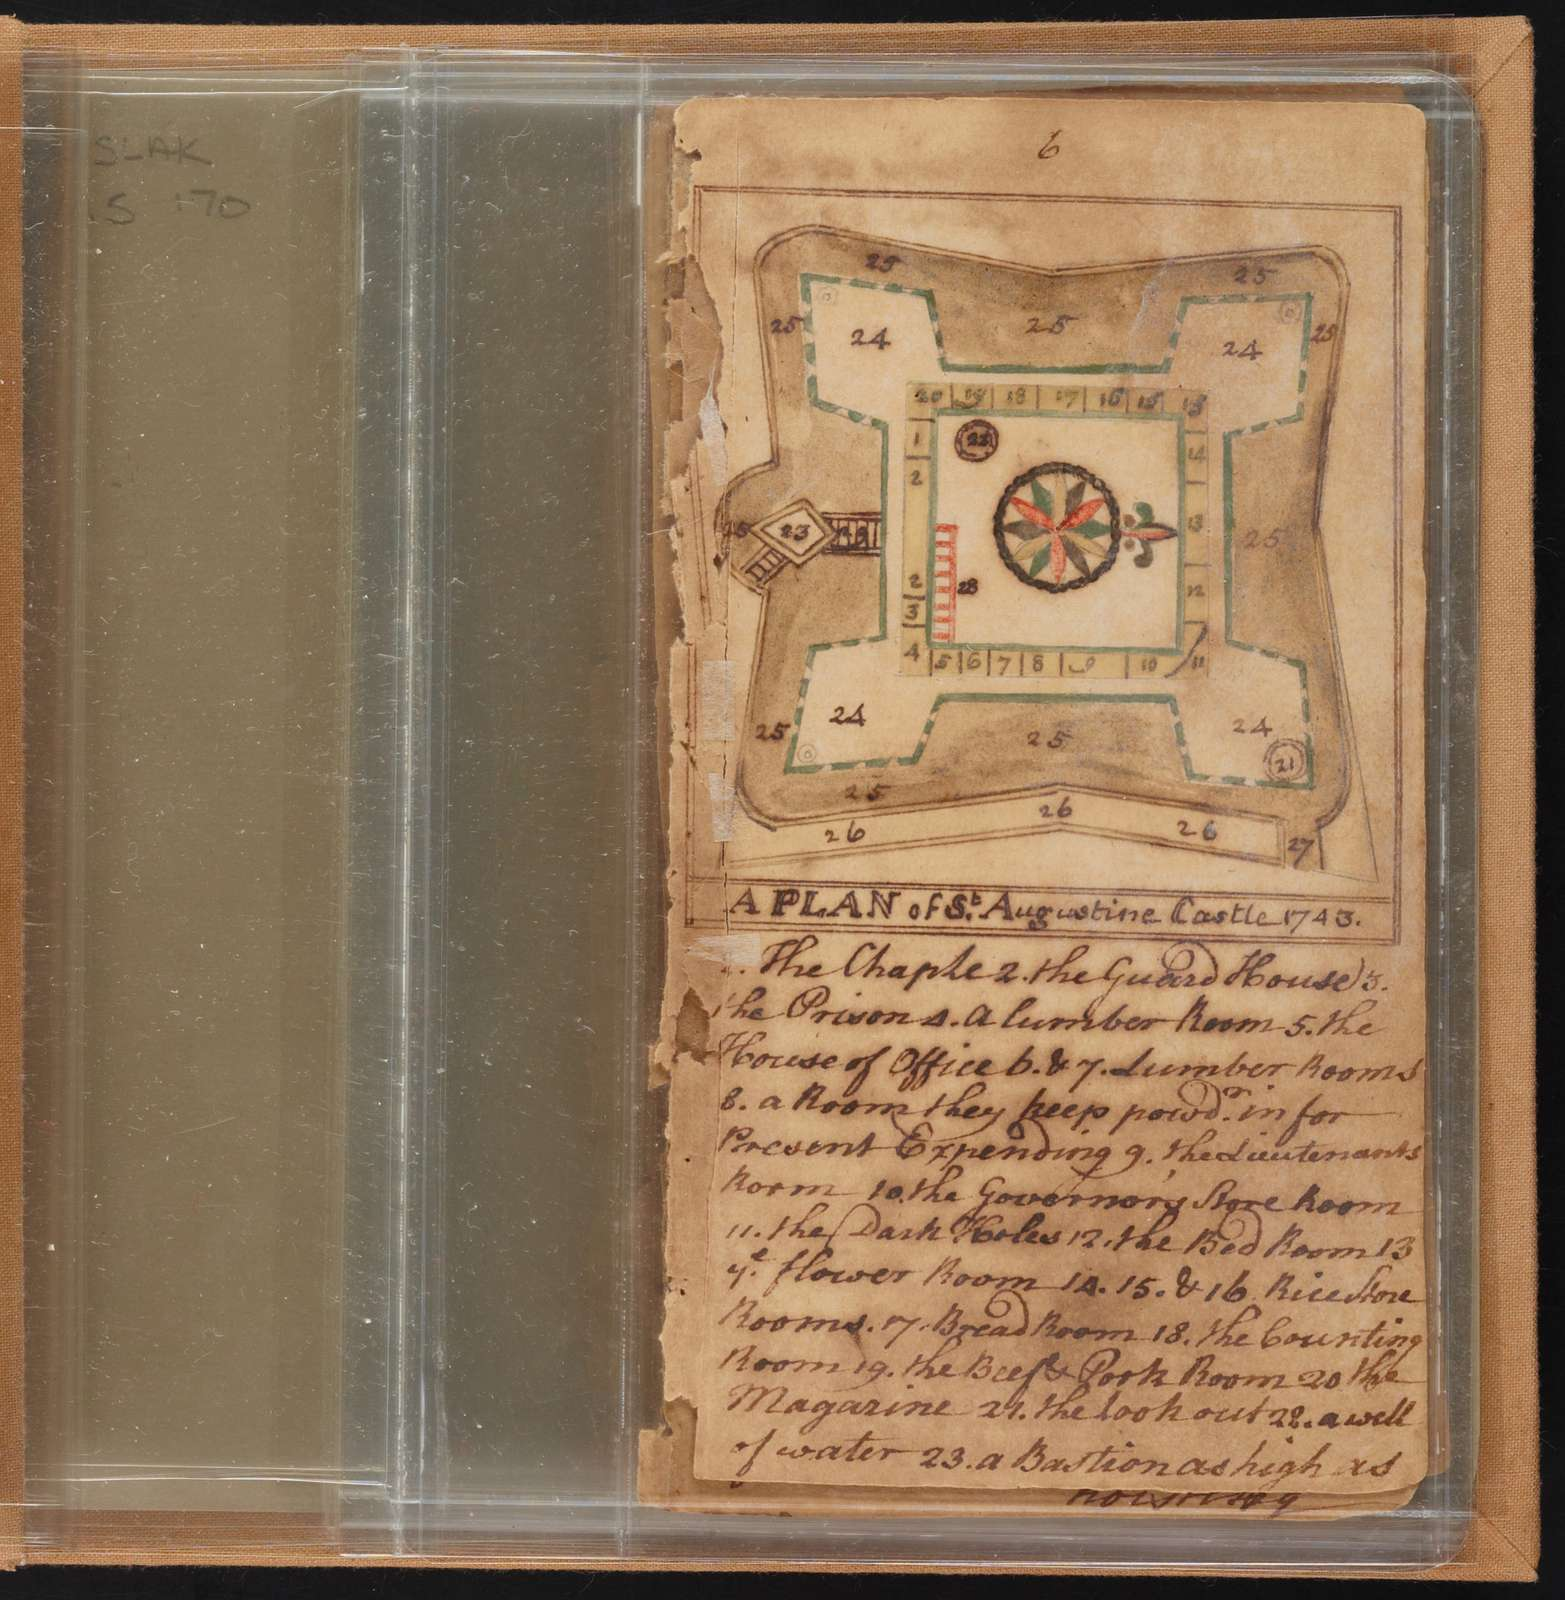 English military report on St. Augustine, with plans and views of St. Augustine Castle, the Spanish watch tower on Anastasia Island, and Matance's Fort,